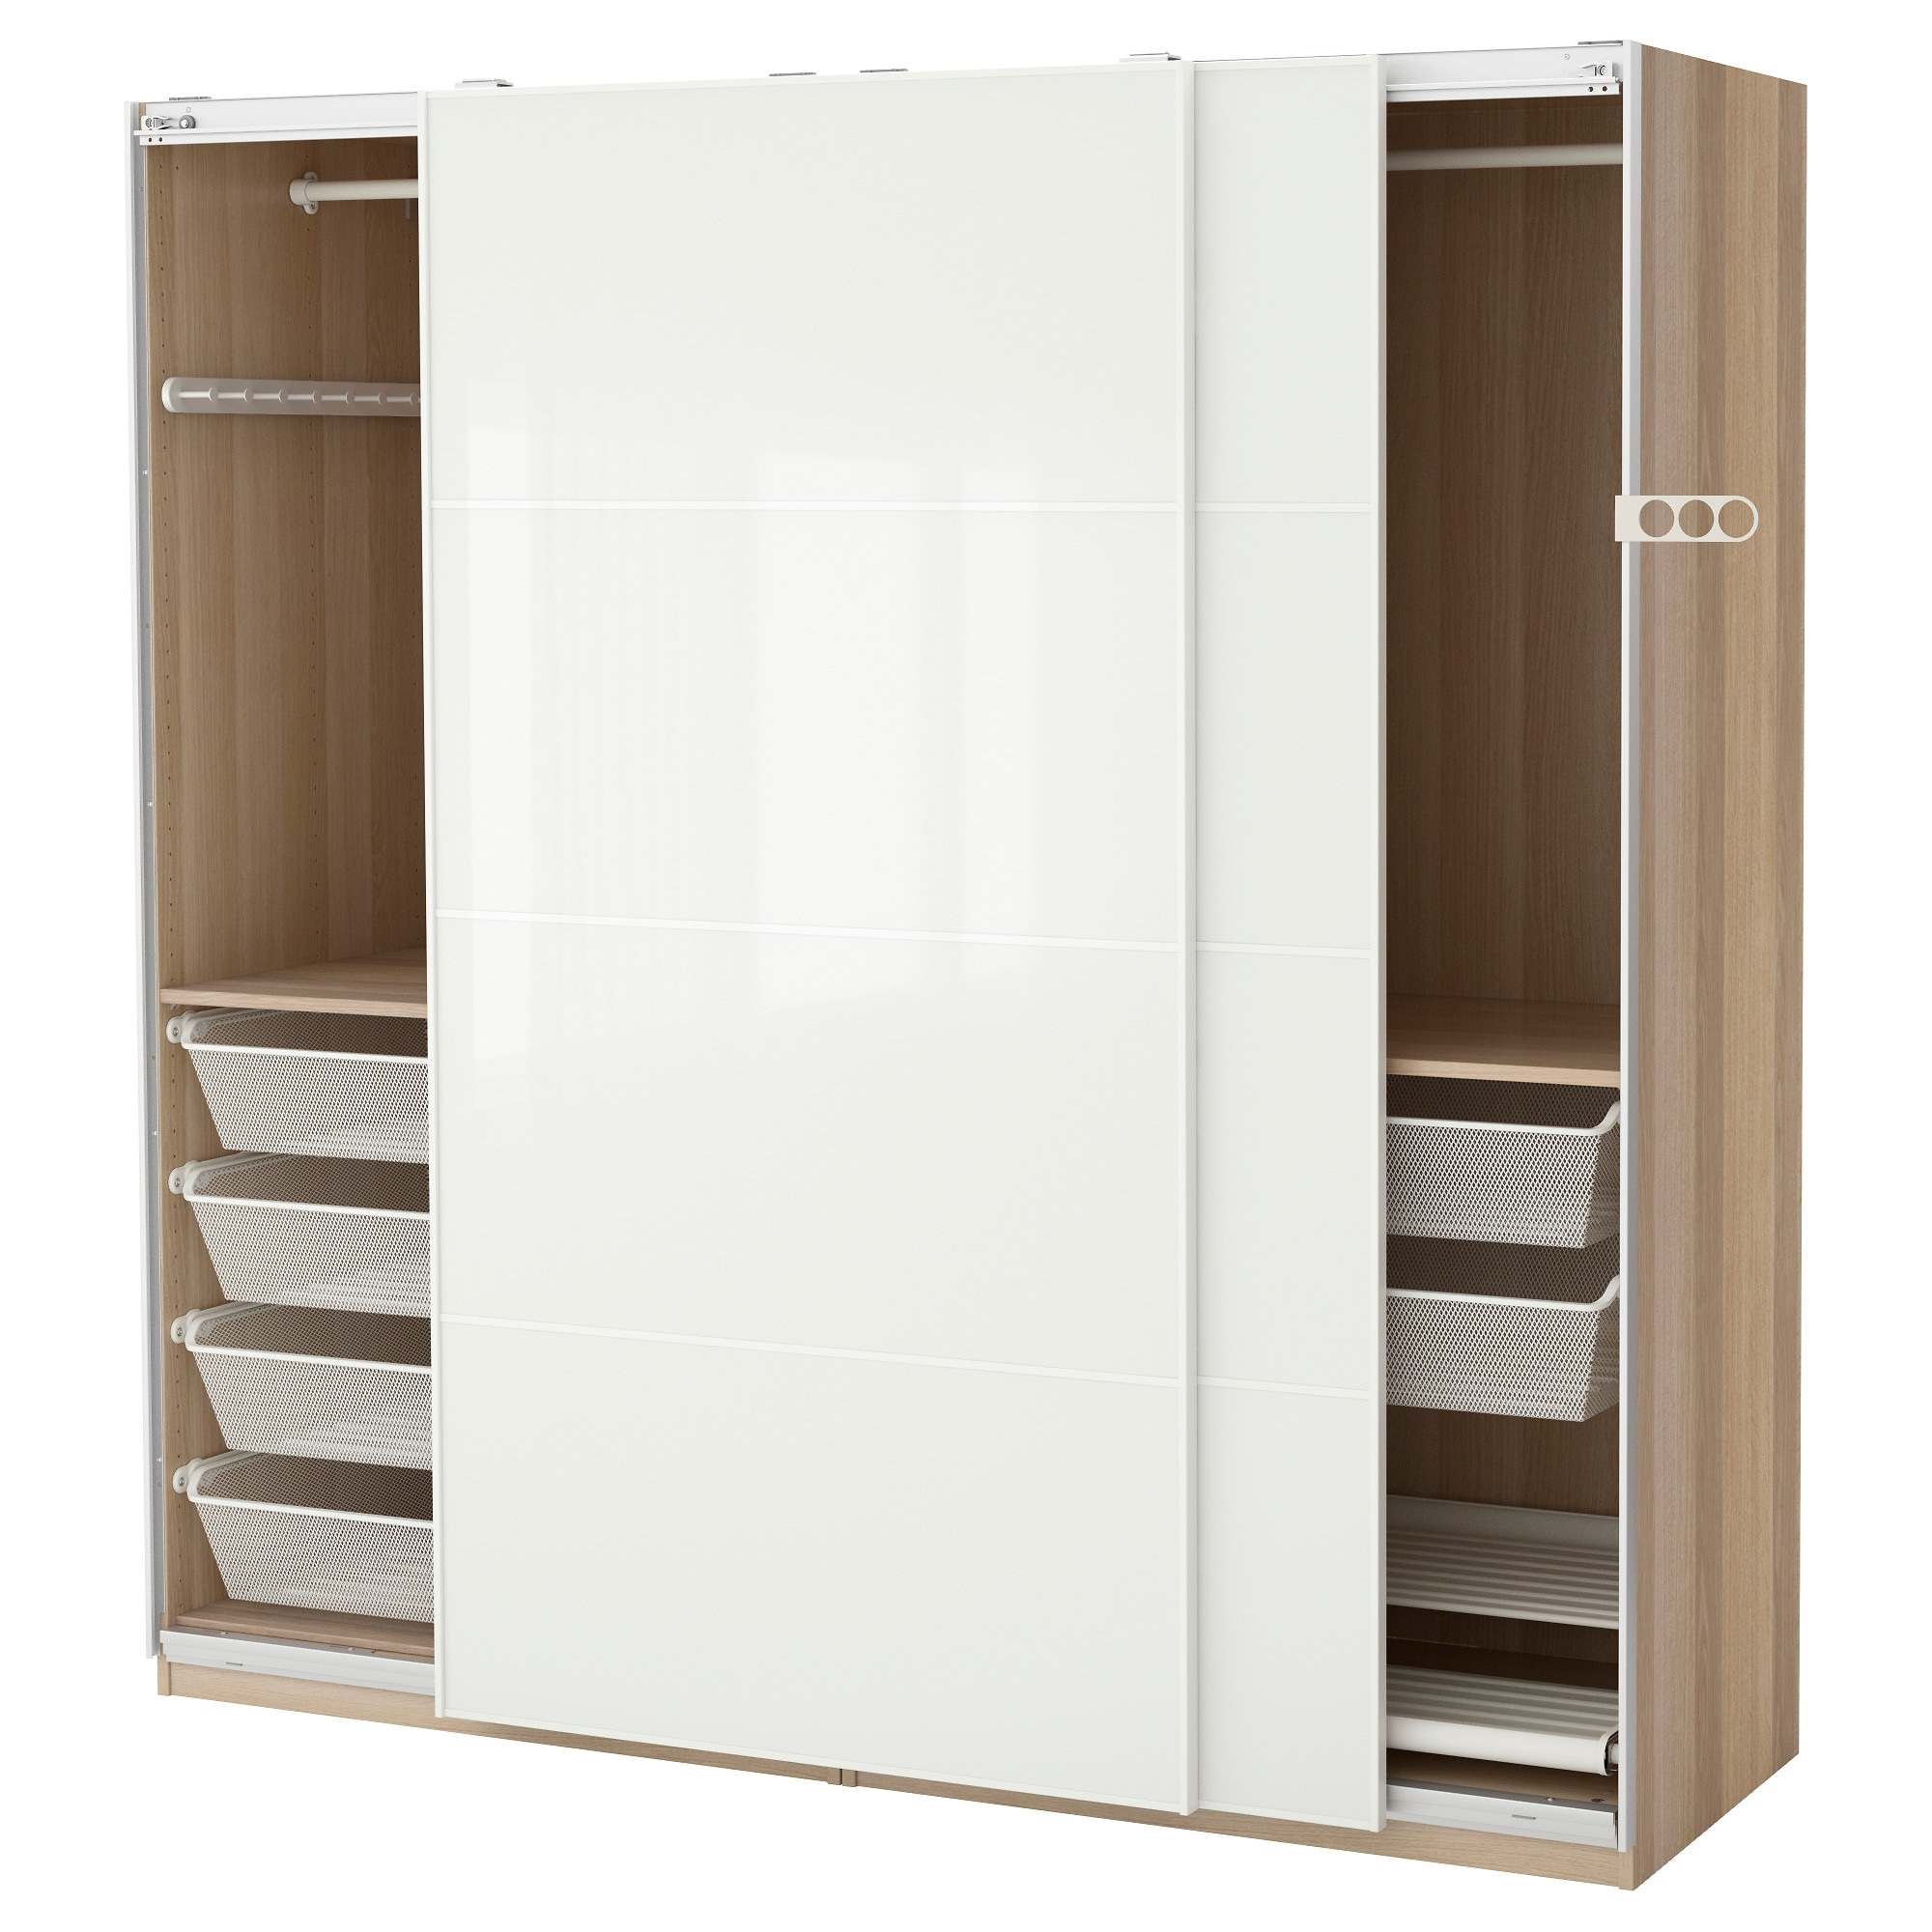 PAX wardrobe, white stained oak effect, Frvik white glass Width: 78 3/